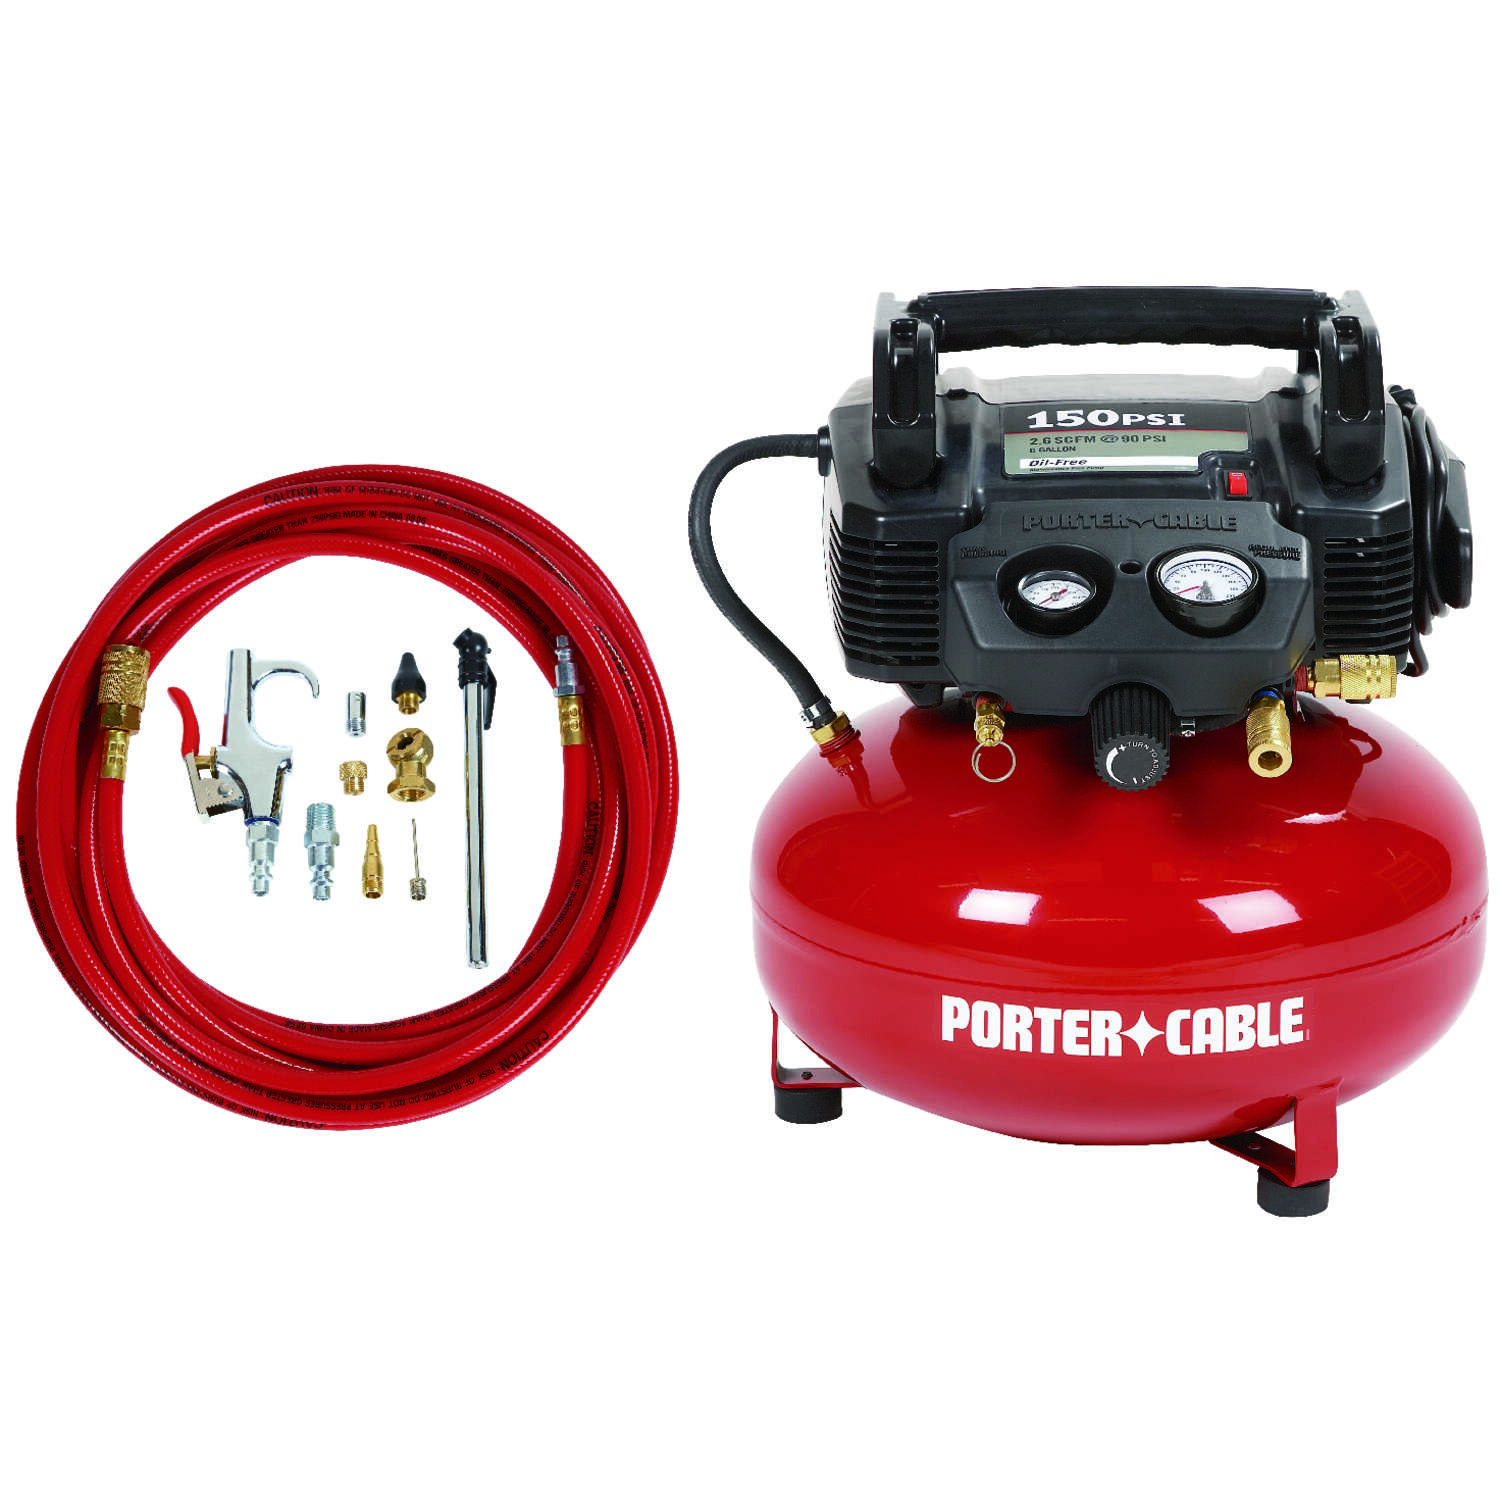 Porter Cable  6 gal. Pancake  Portable Air Compressor Kit  150 psi 0.8 hp